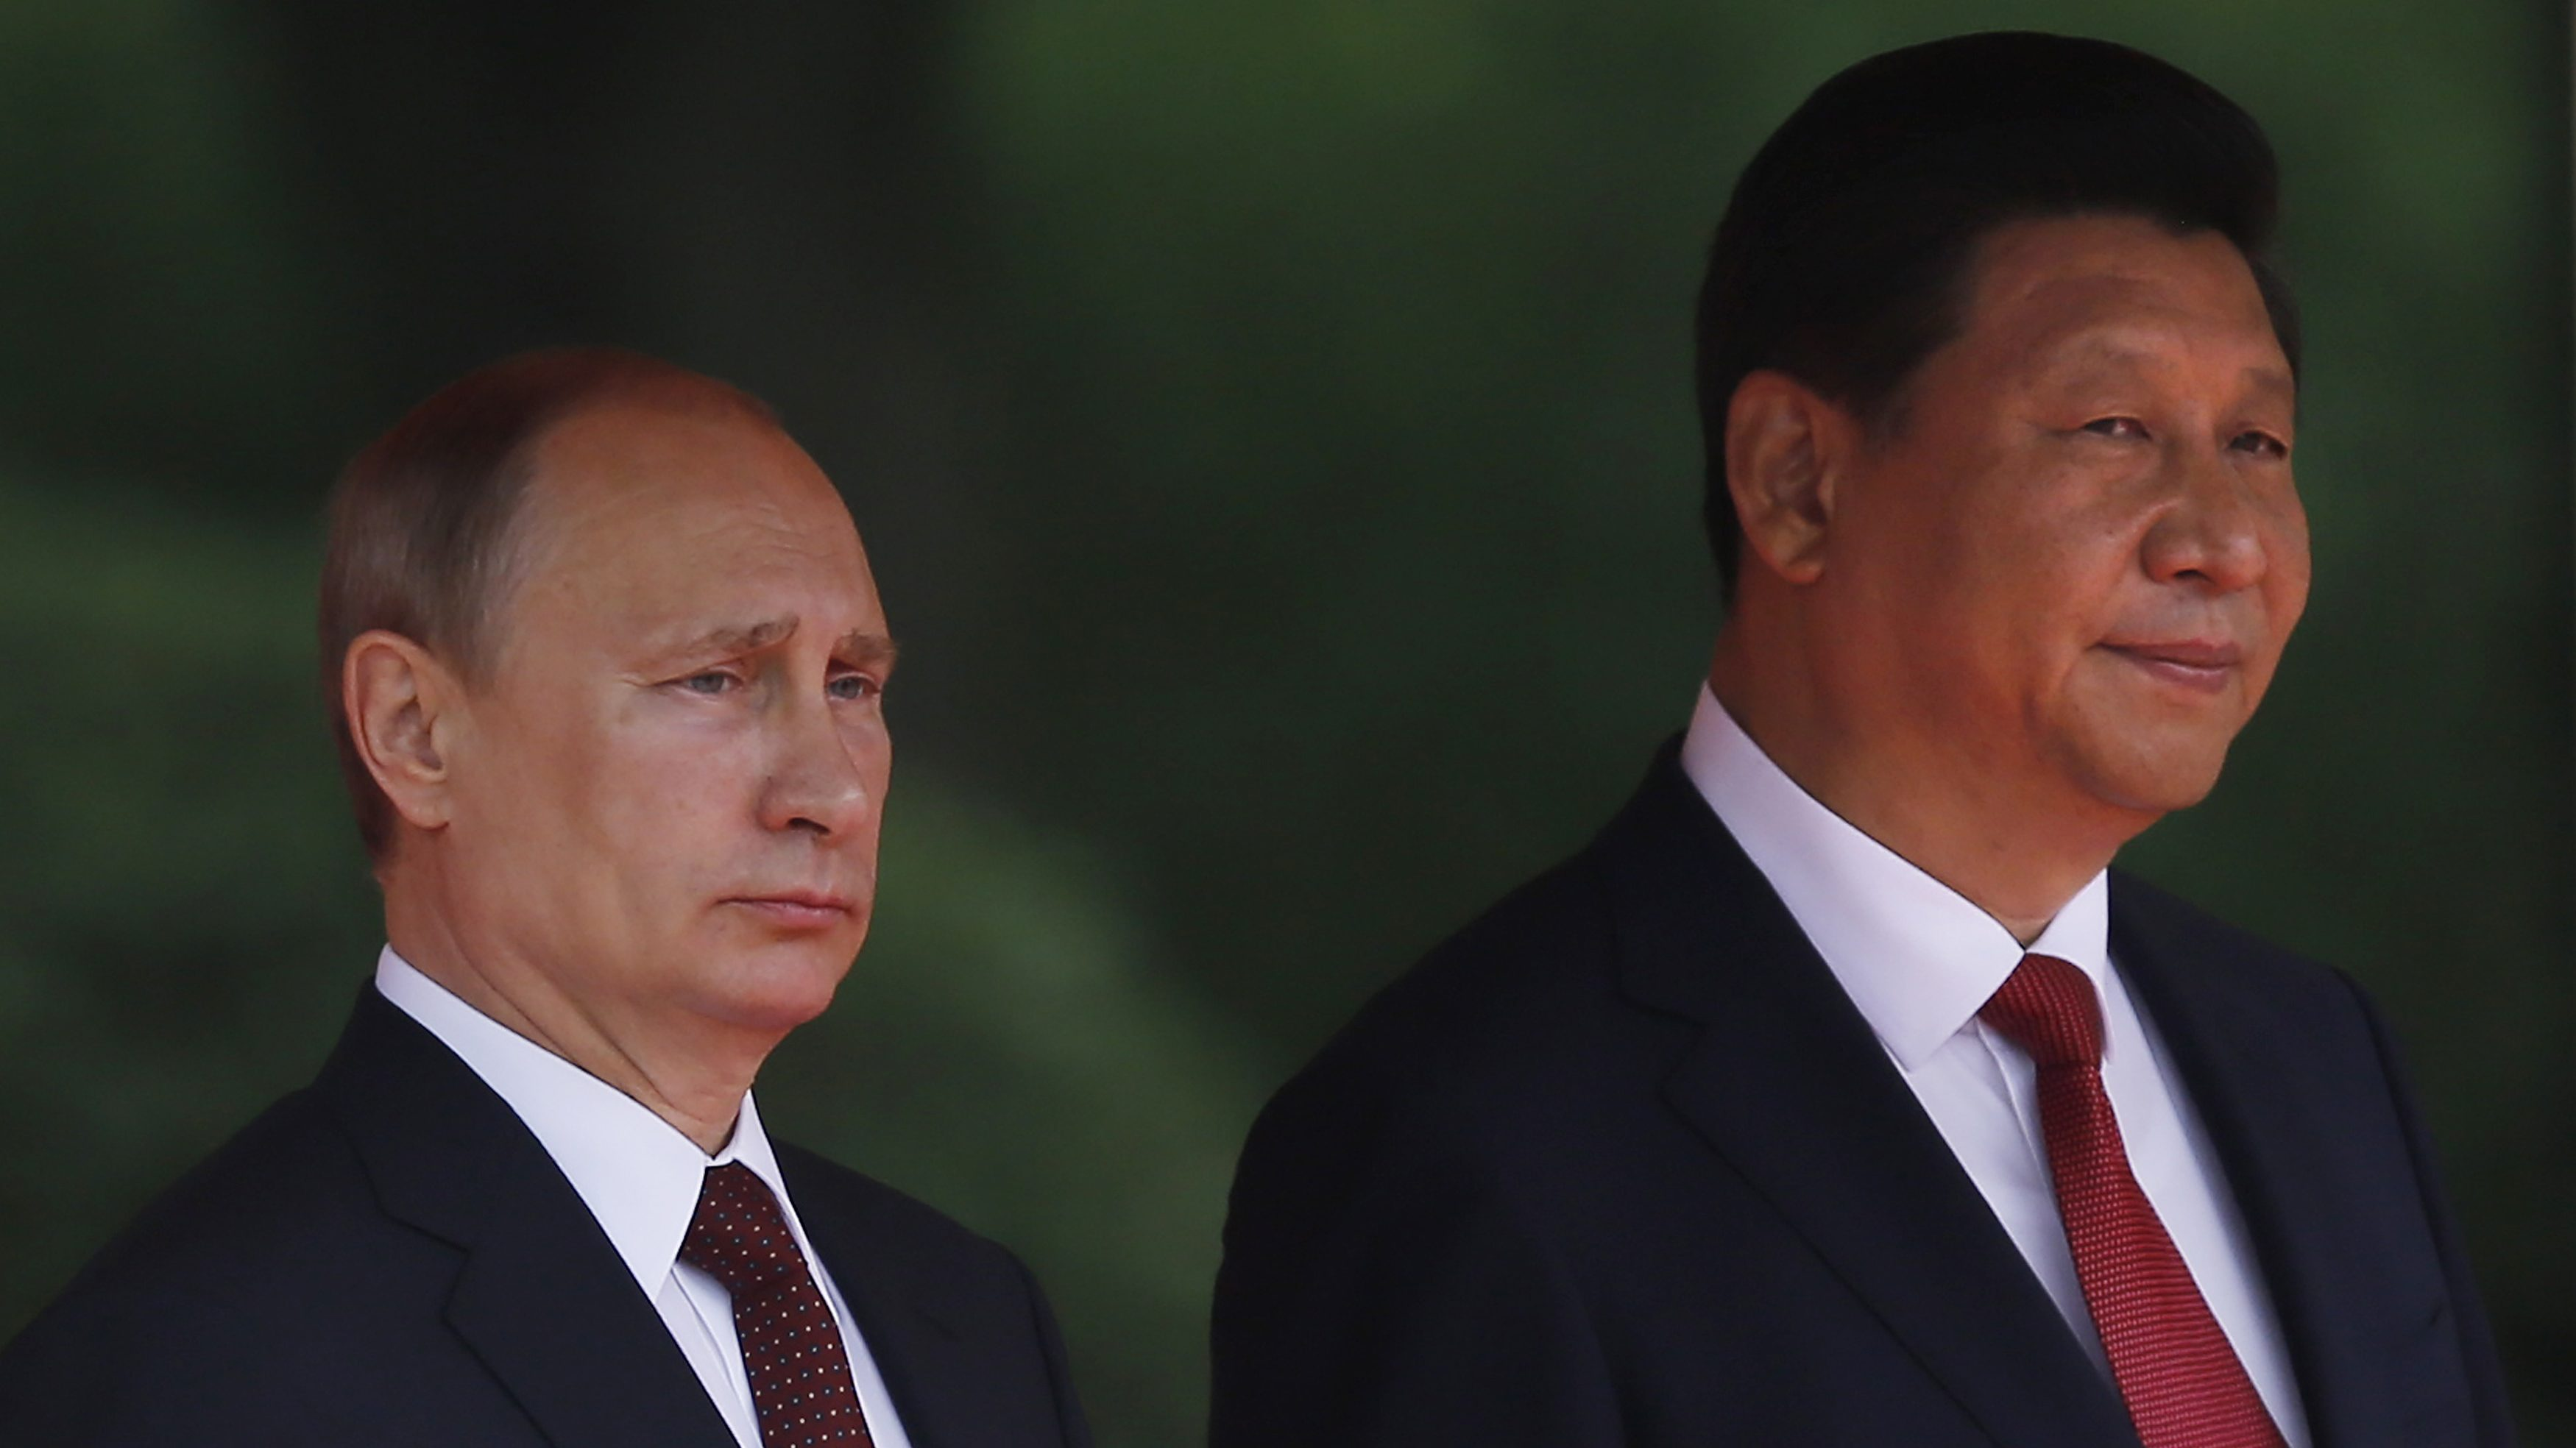 China's President Xi Jinping (R) and his Russian counterpart Vladimir Putin attend a welcoming ceremony at the Xijiao State Guesthouse, before the fourth Conference on Interaction and Confidence Building Measures in Asia (CICA) summit in Shanghai May 20, 2014. Trade between China and Russia is expected to reach $100 billion by 2015, Xi said on Tuesday, after meeting with Putin.